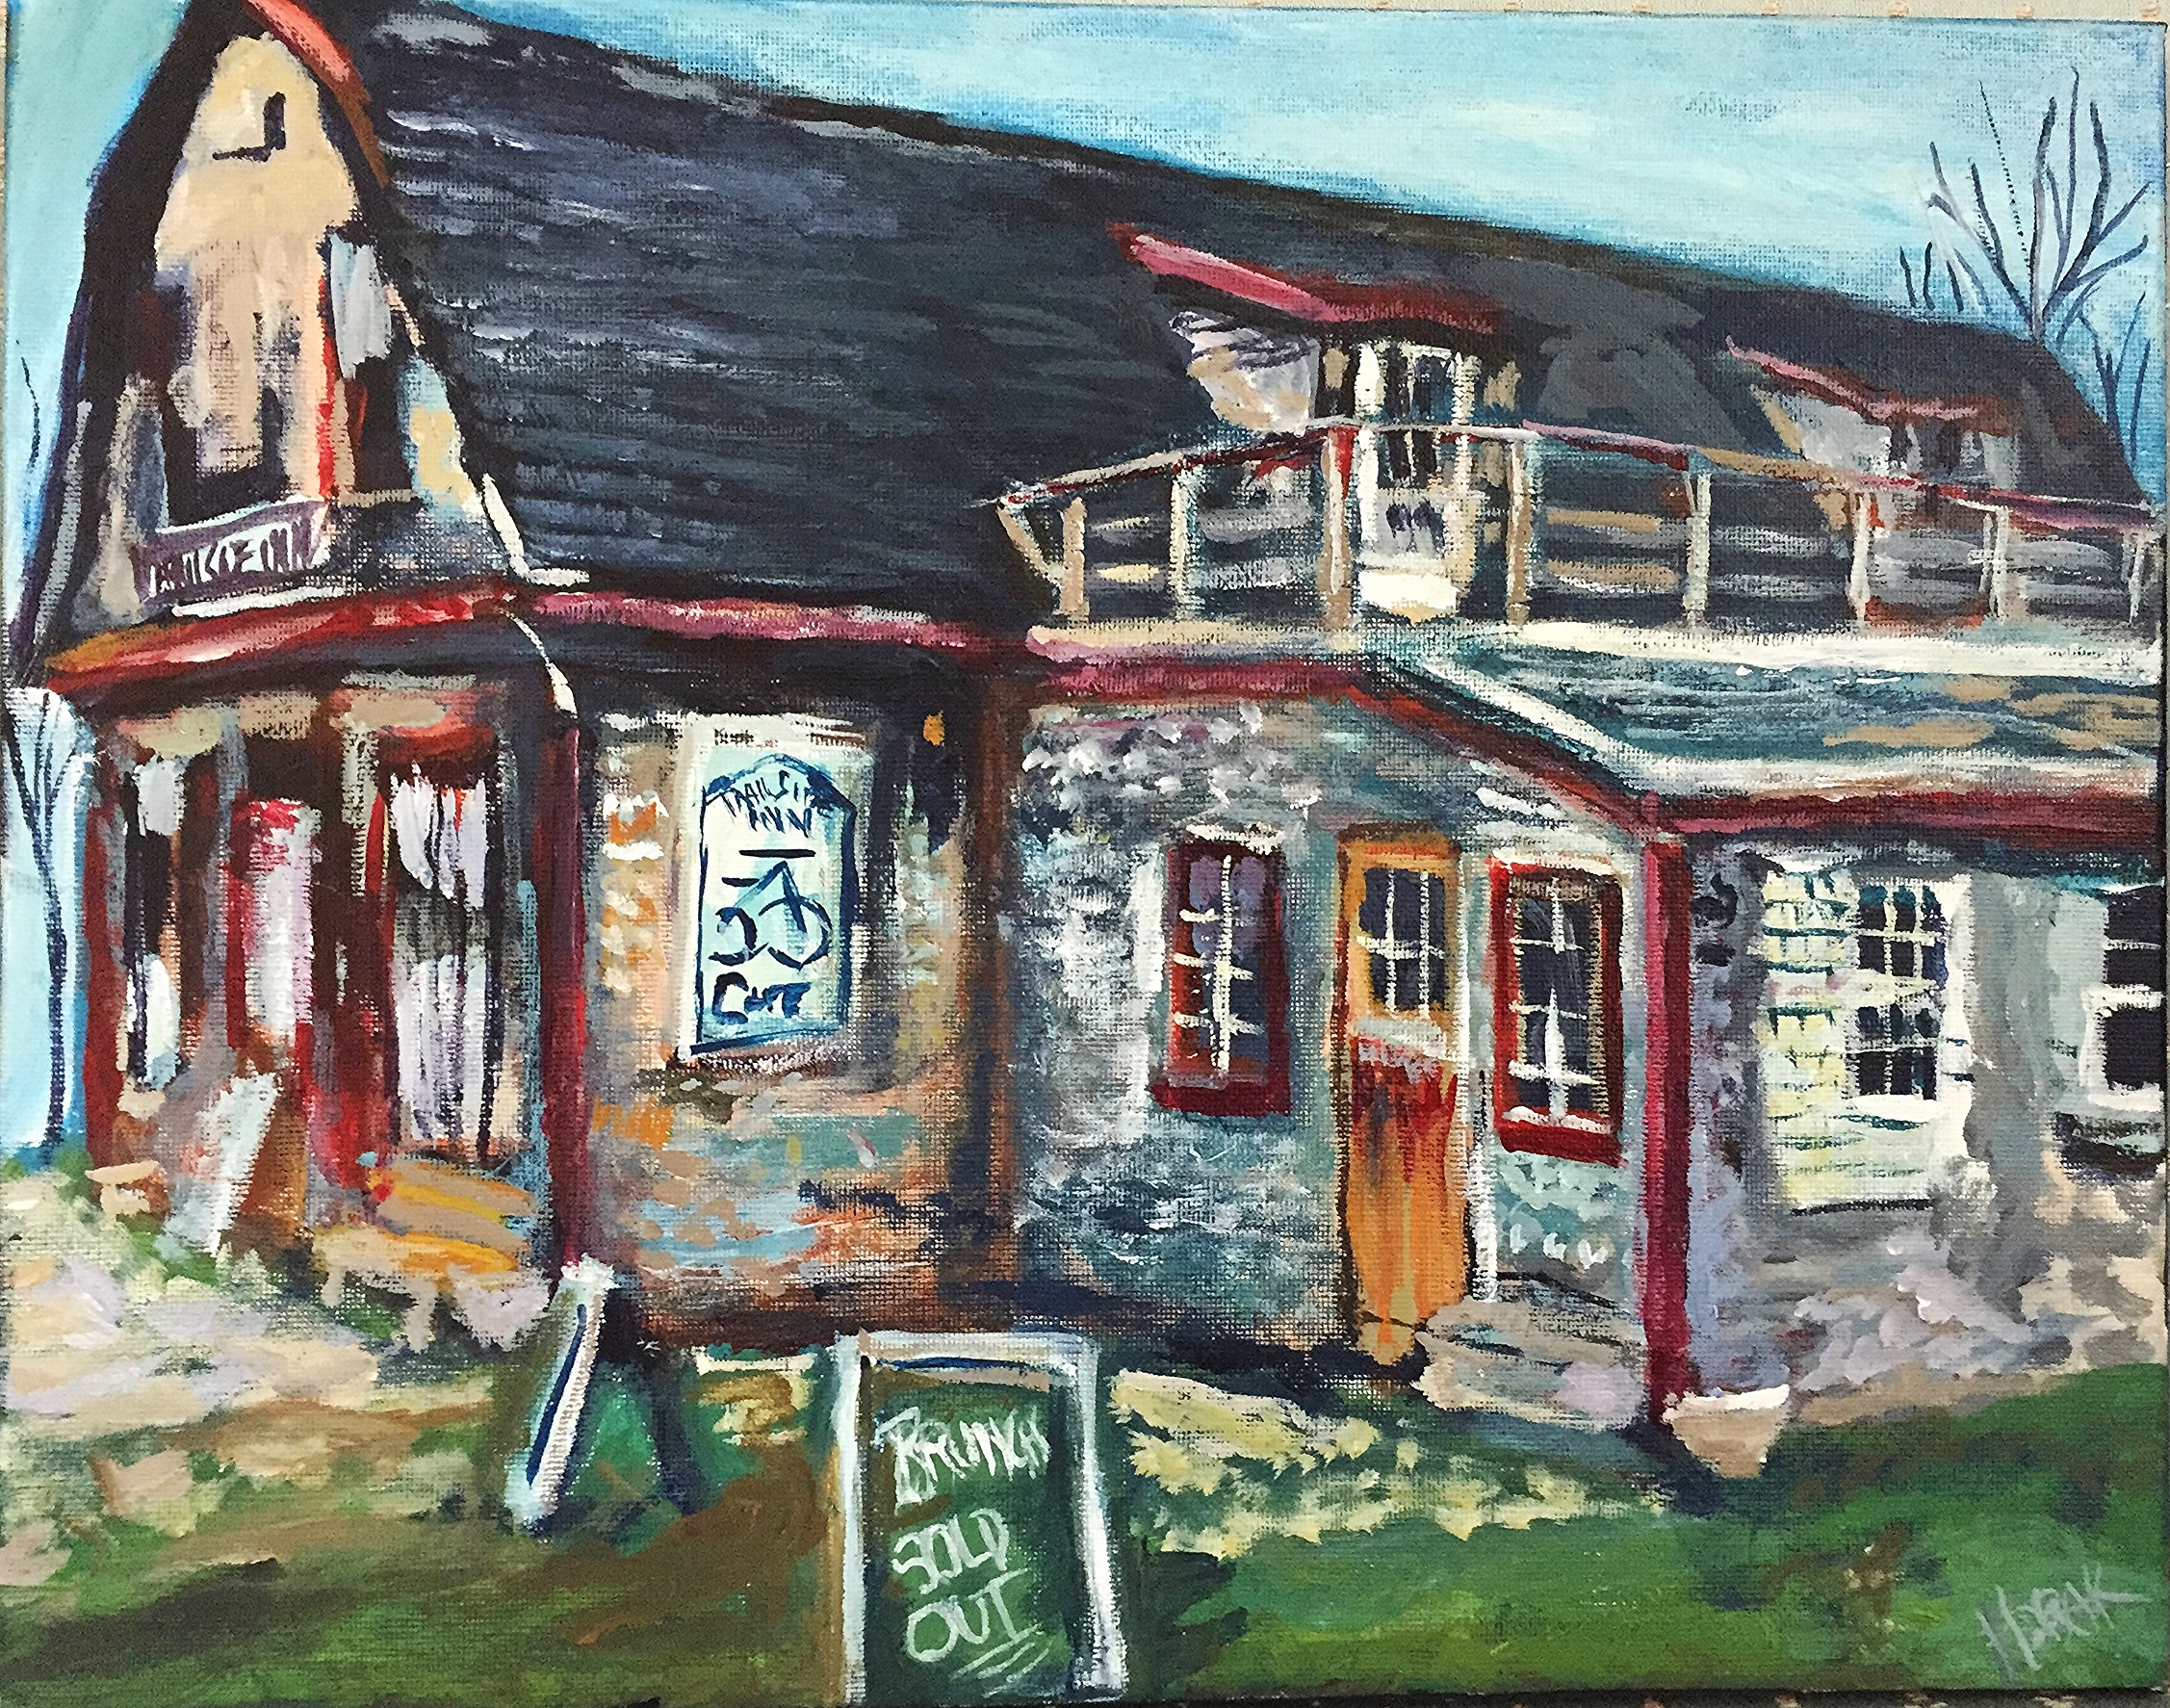 Mother's Day Brunch.  The Trailside Inn, P.E.I.  Acrylic on Canvass.